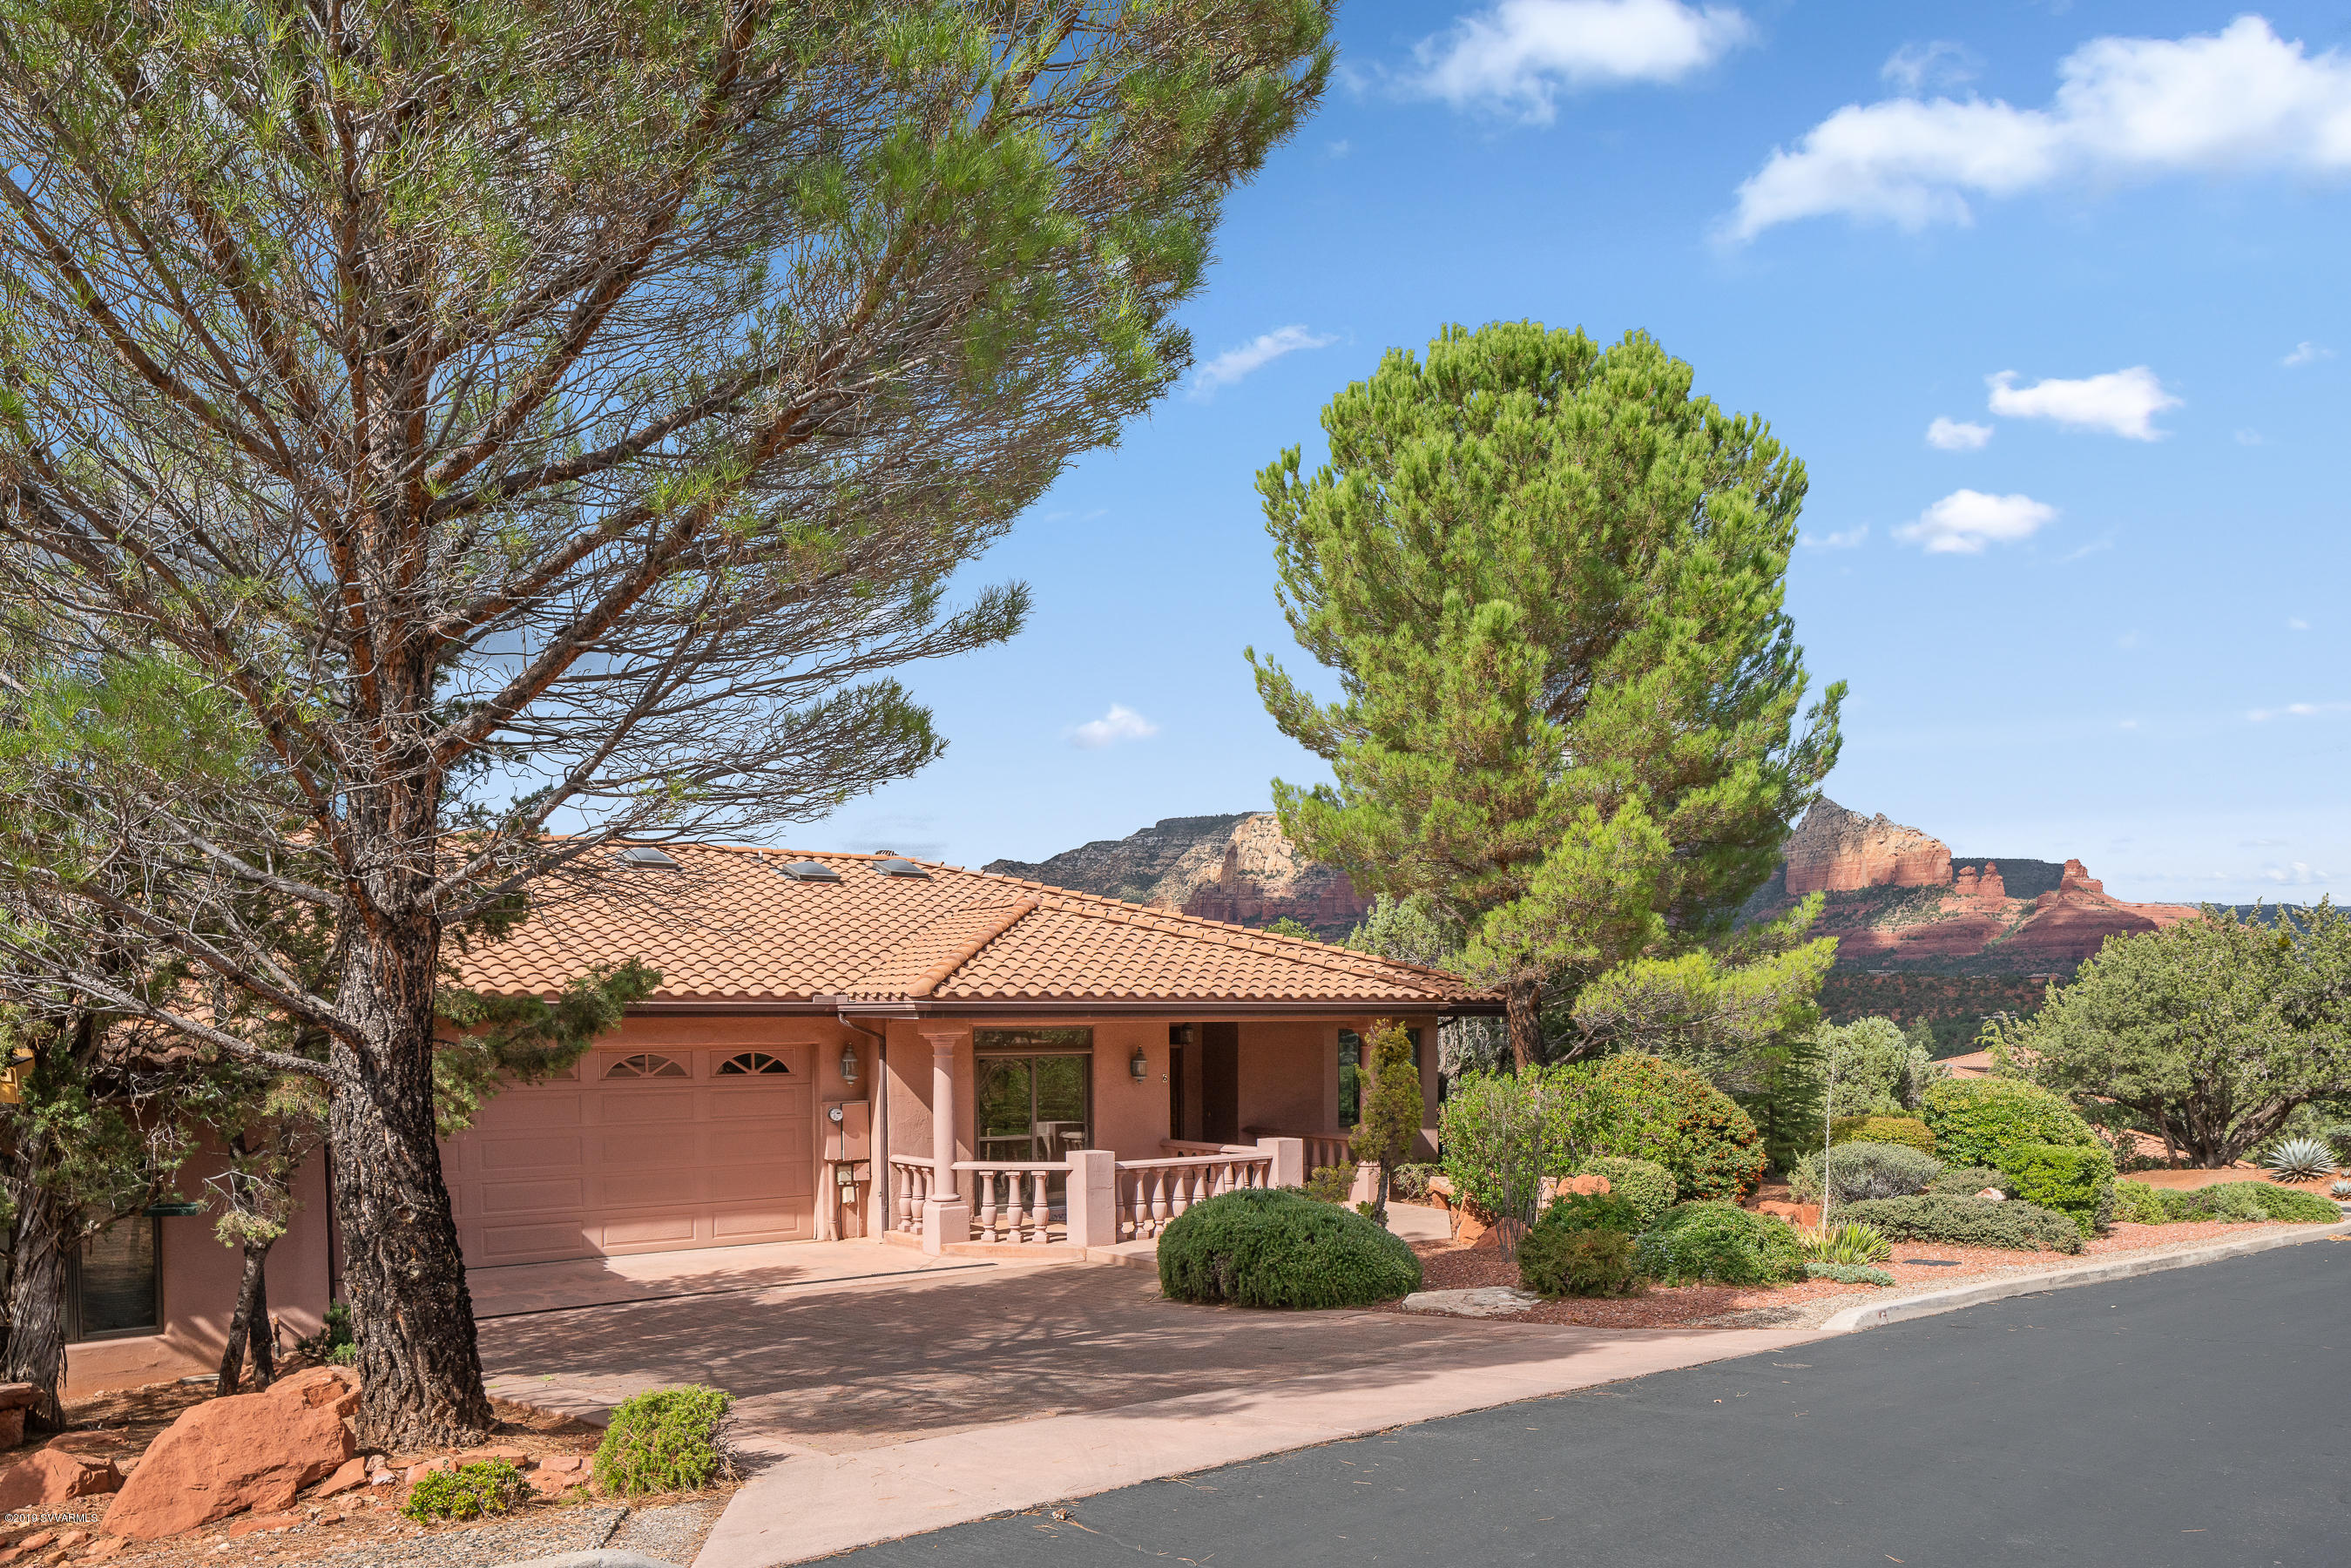 6 Courtney Circle Sedona, AZ 86336